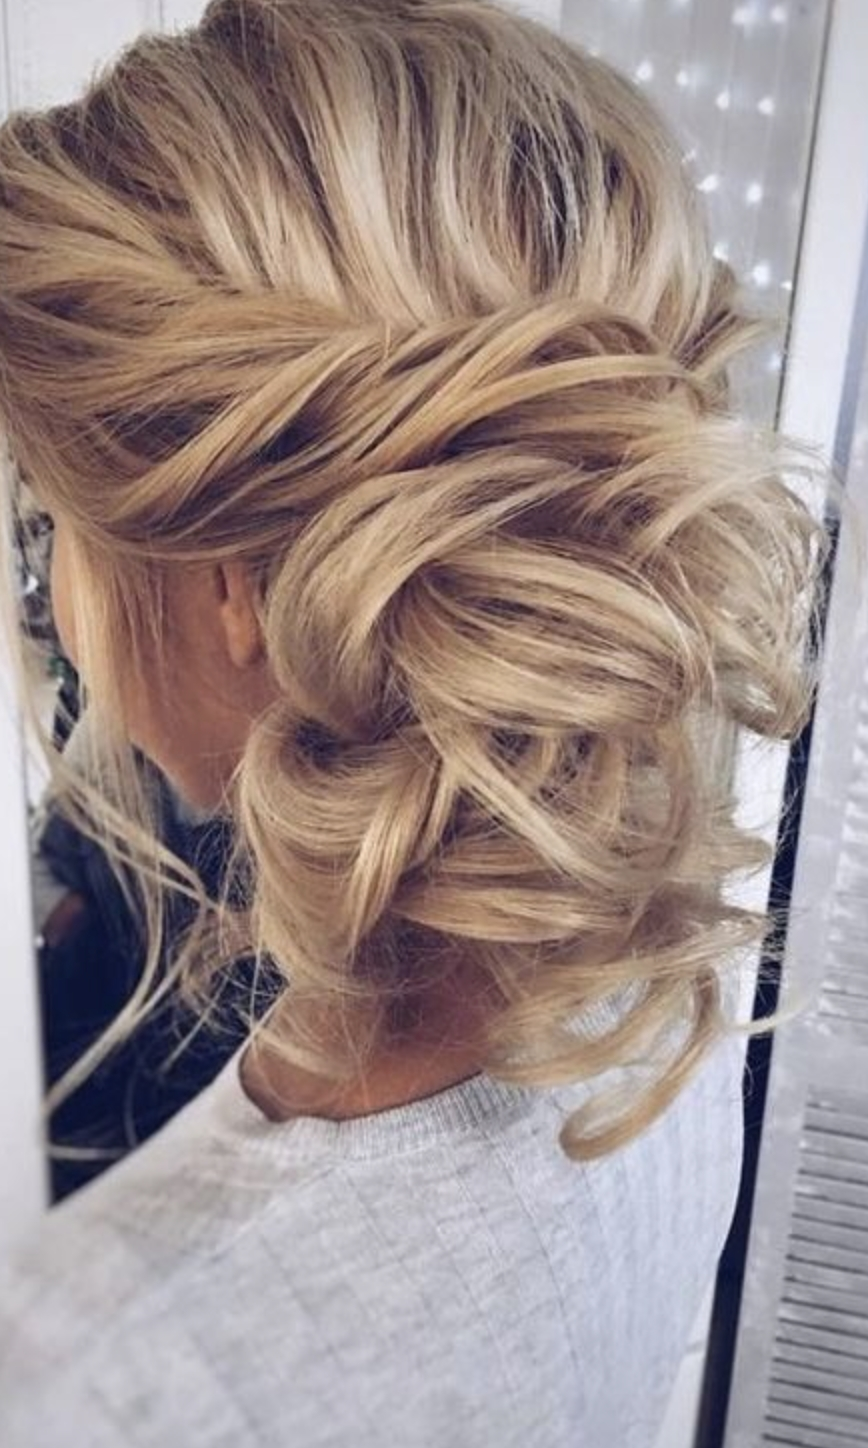 Messy Updo X Girlgetglamoroushair Clip In Hair Extensions Beach Day In Latest Long Blond Ponytail Hairstyles With Bump And Sparkling Clip (View 13 of 20)